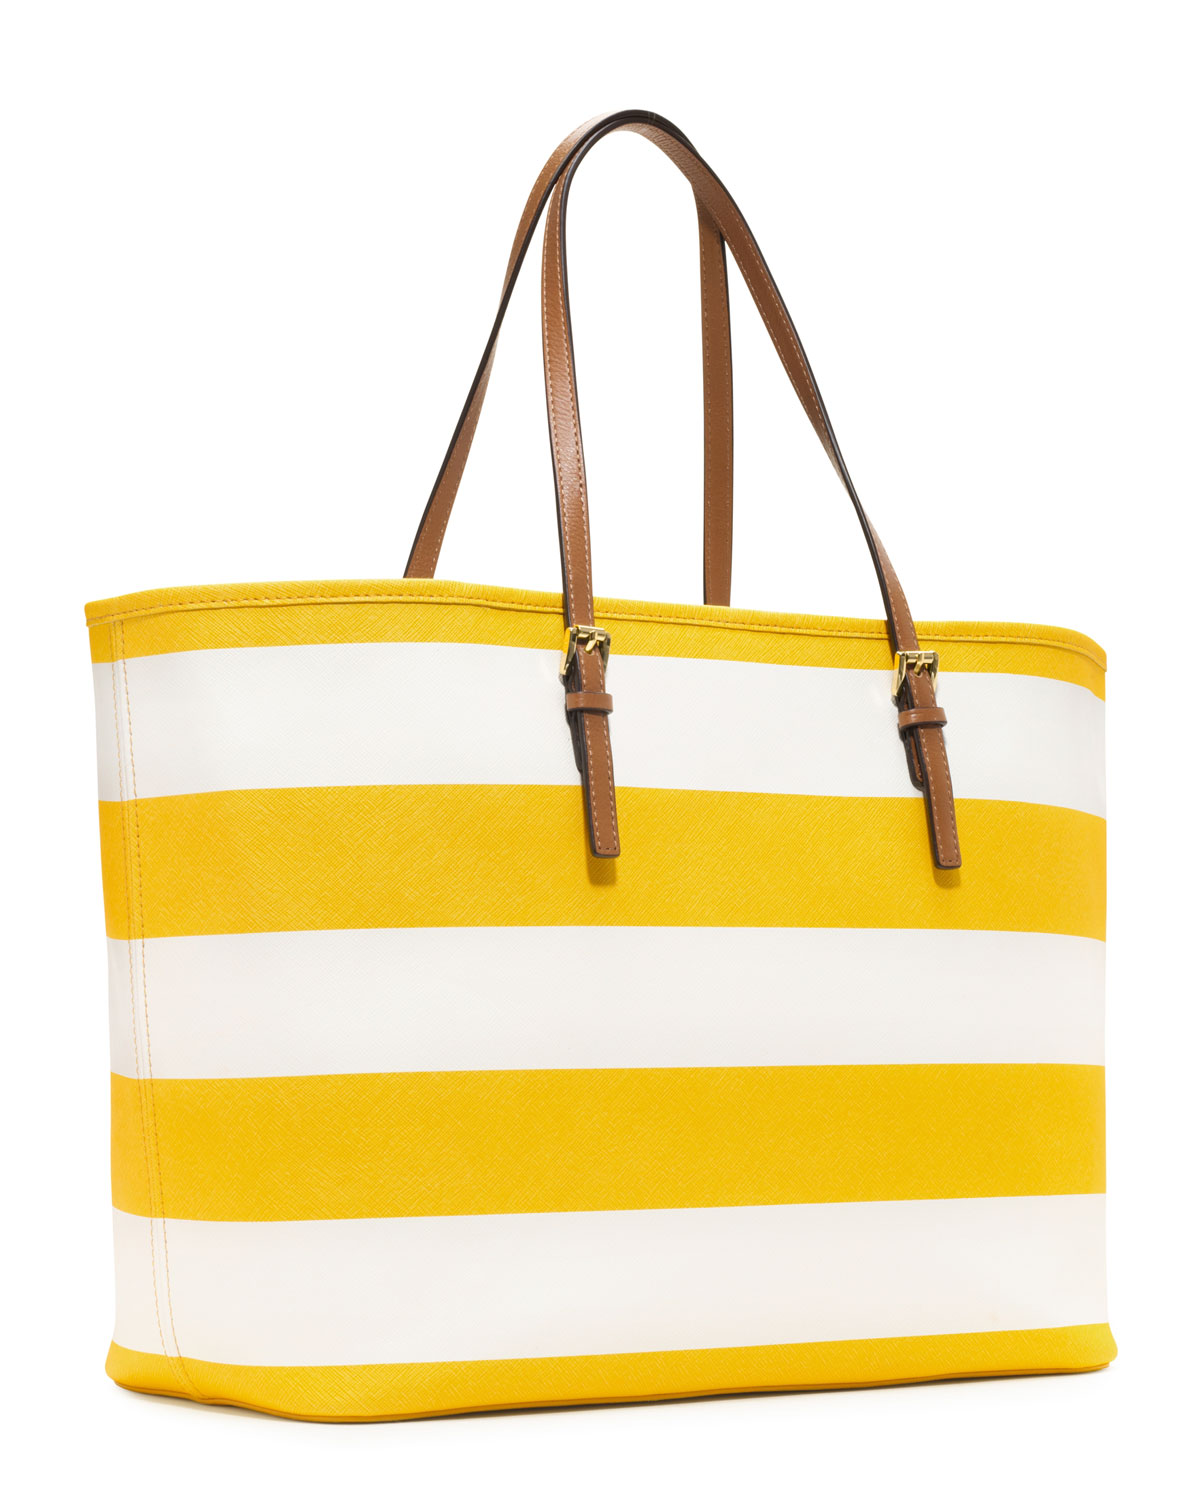 22257538df70 Lyst - Michael Kors Medium Jet Set Striped Travel Tote in Yellow